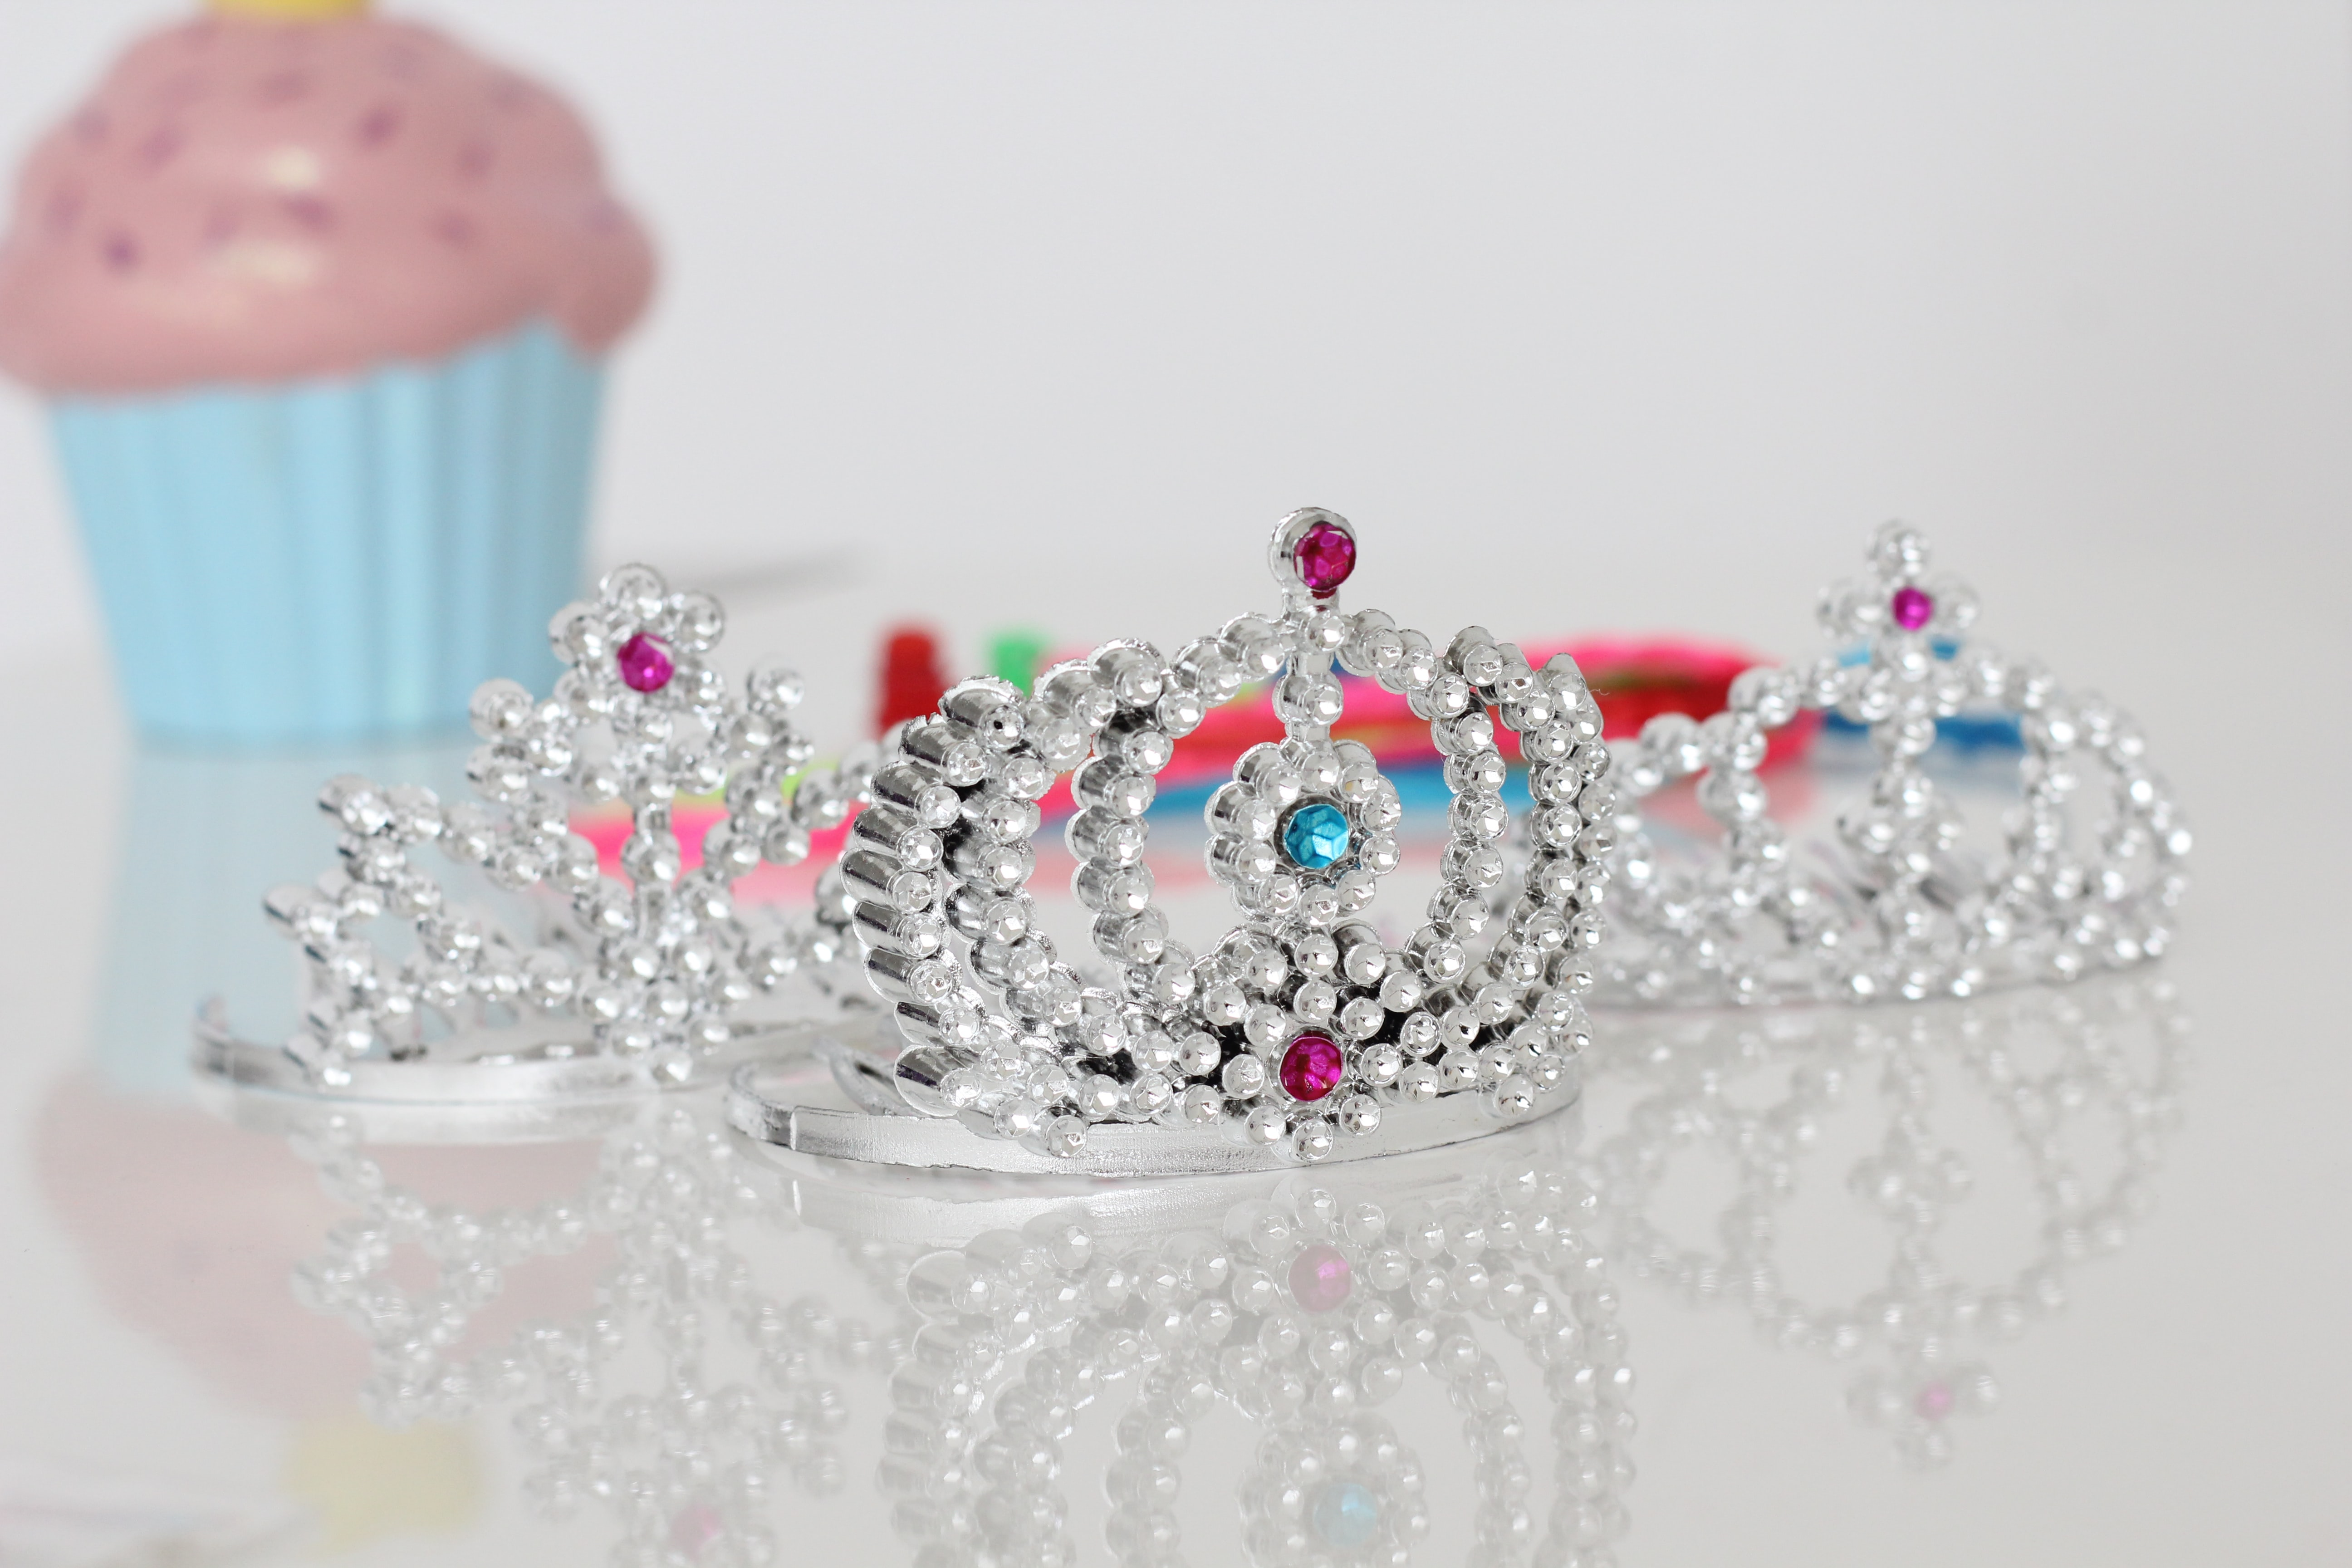 silver-colored tiara rings with clear gemstones